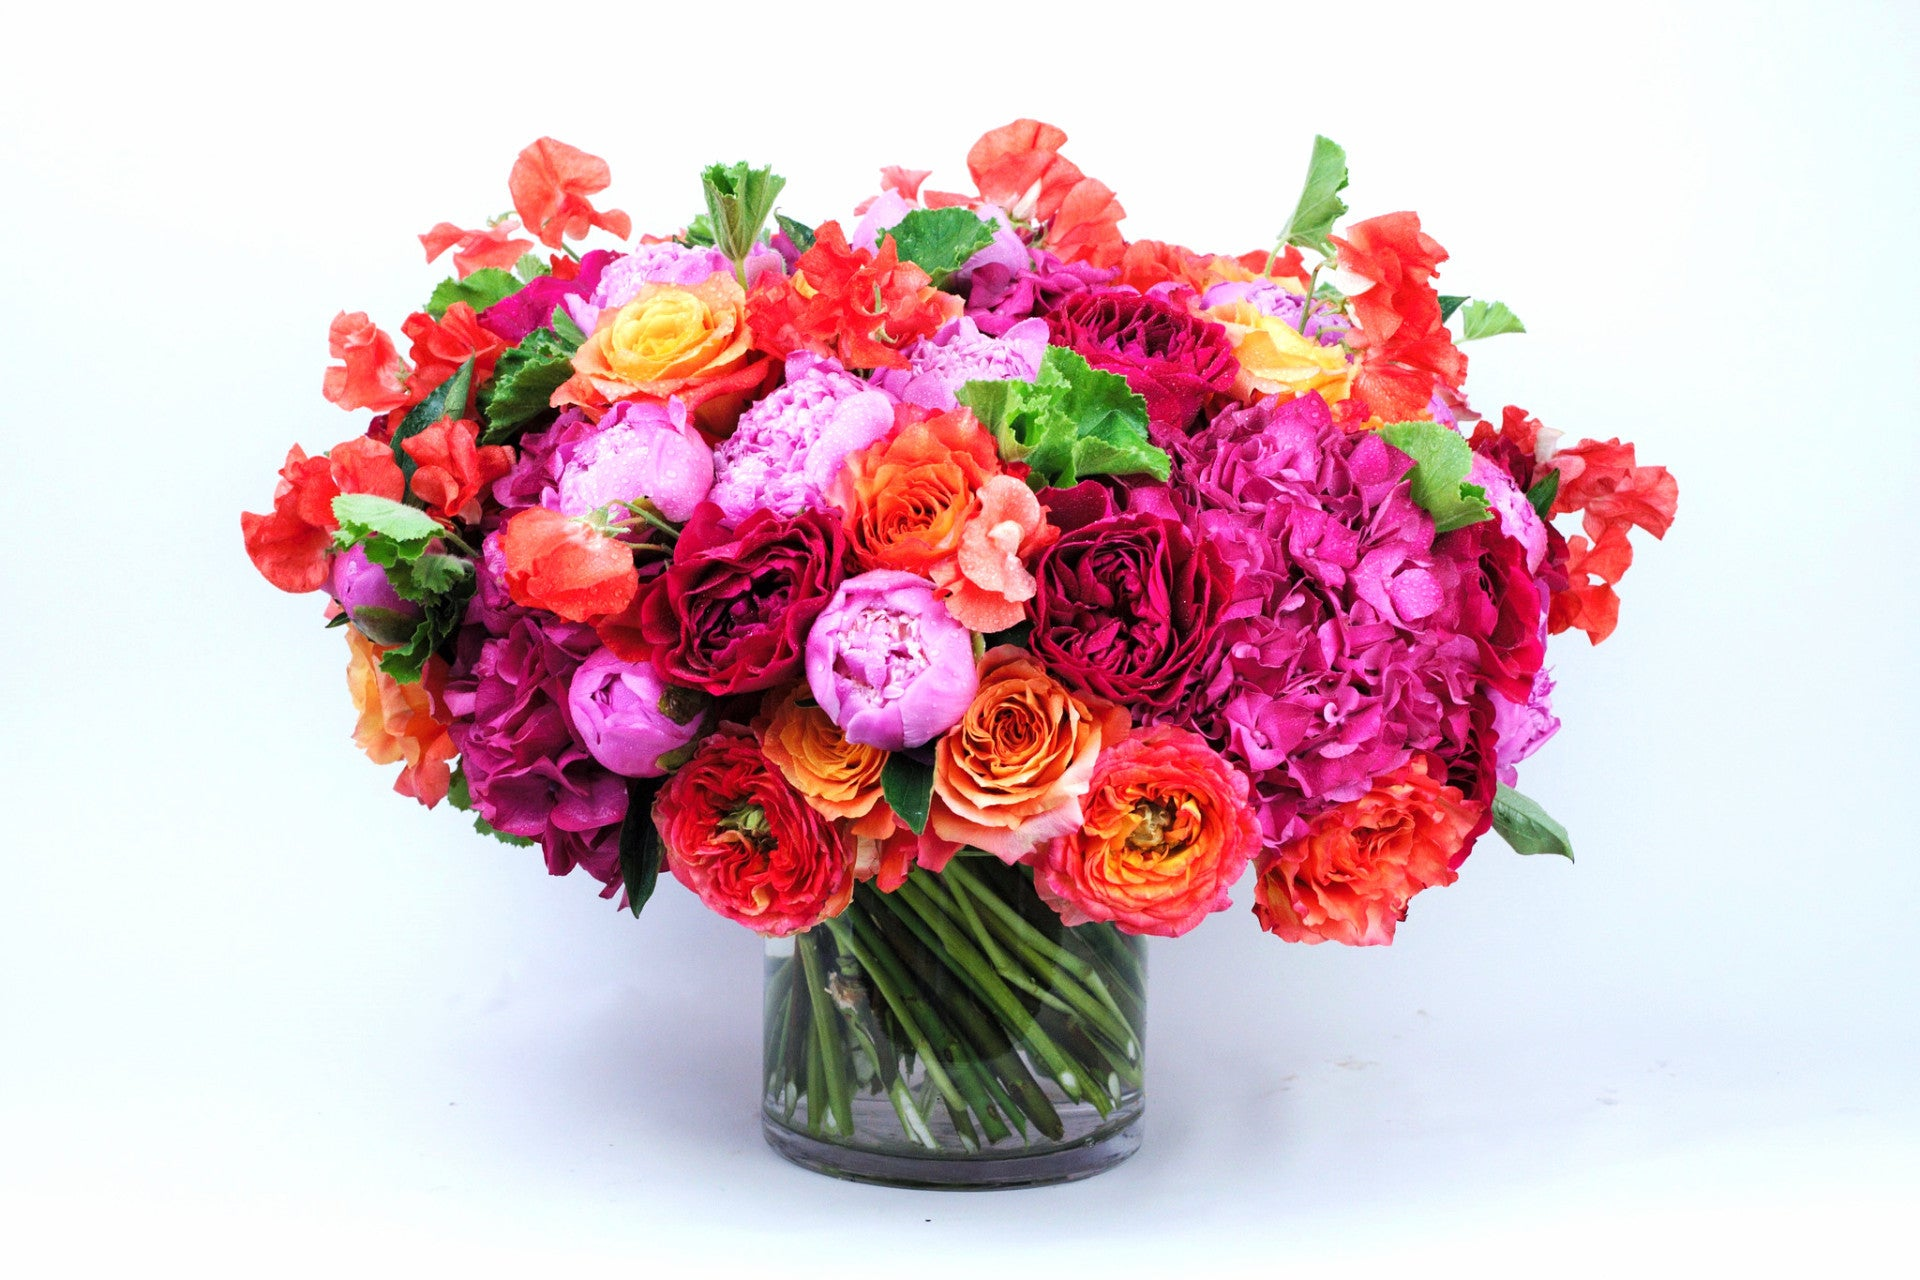 Hot Lady - Élan Flowers peonies roses colorful arrangement